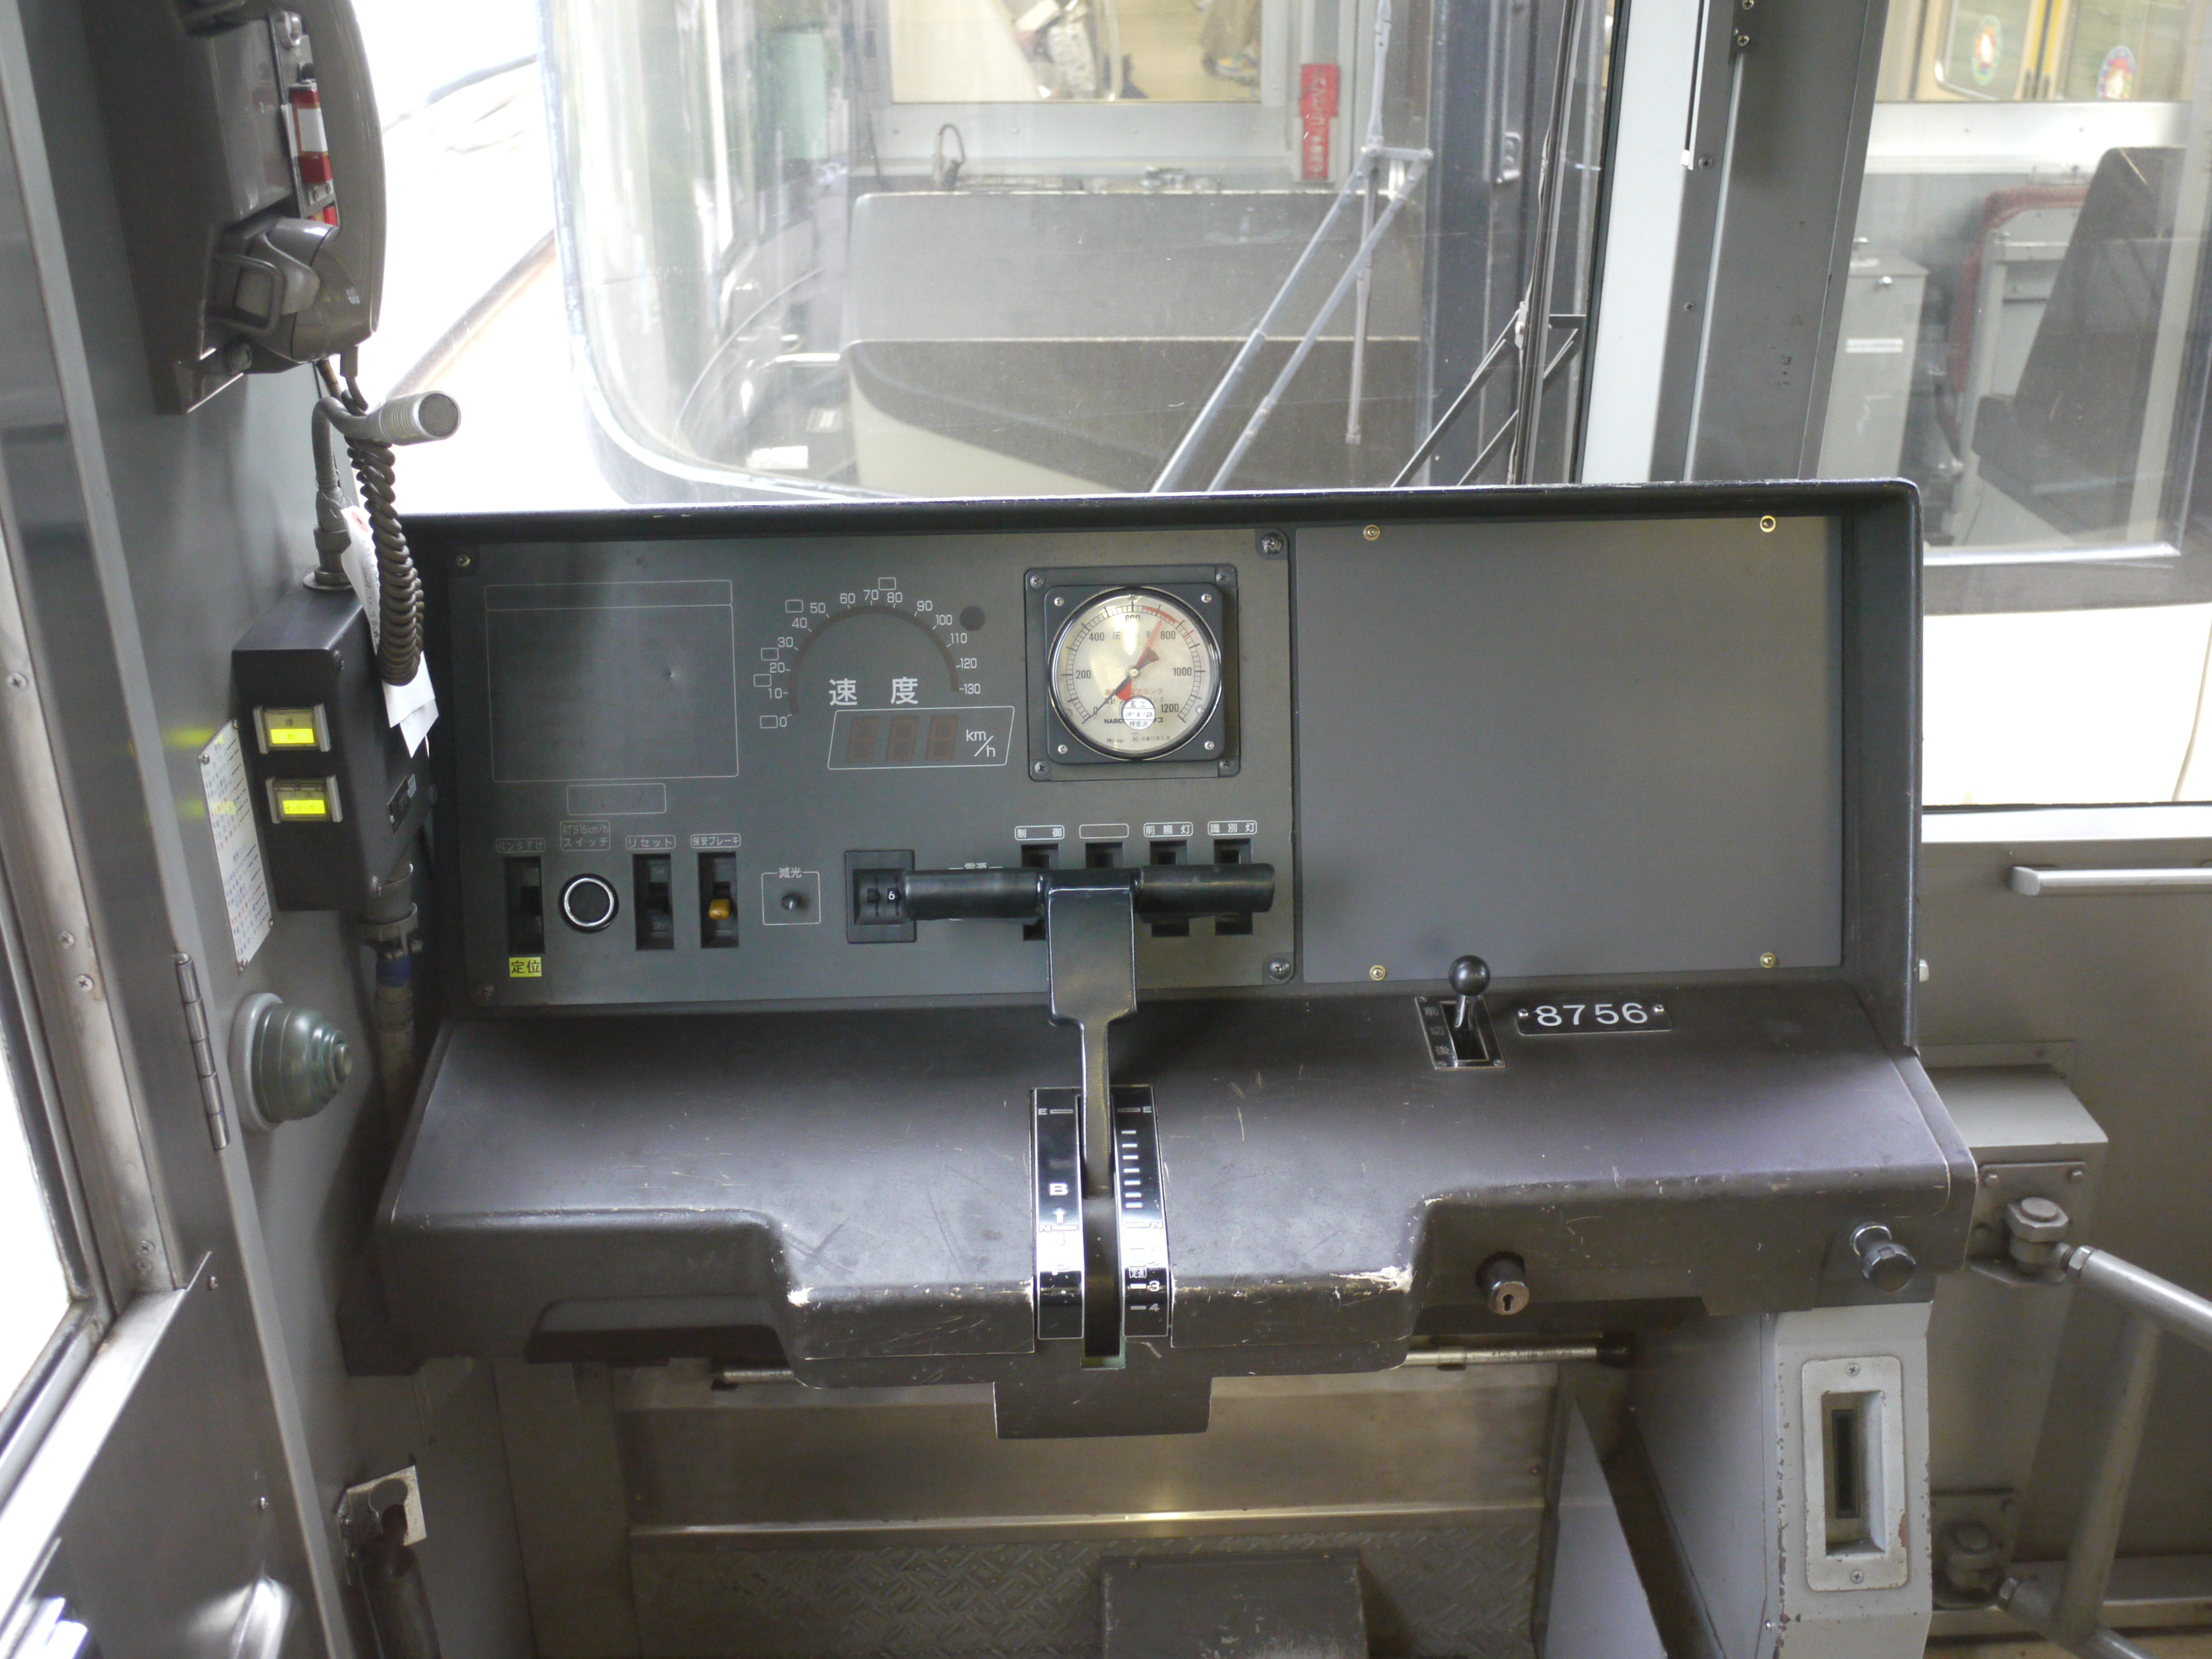 https://upload.wikimedia.org/wikipedia/commons/4/42/Keio_8000_Drivers_cab.JPG